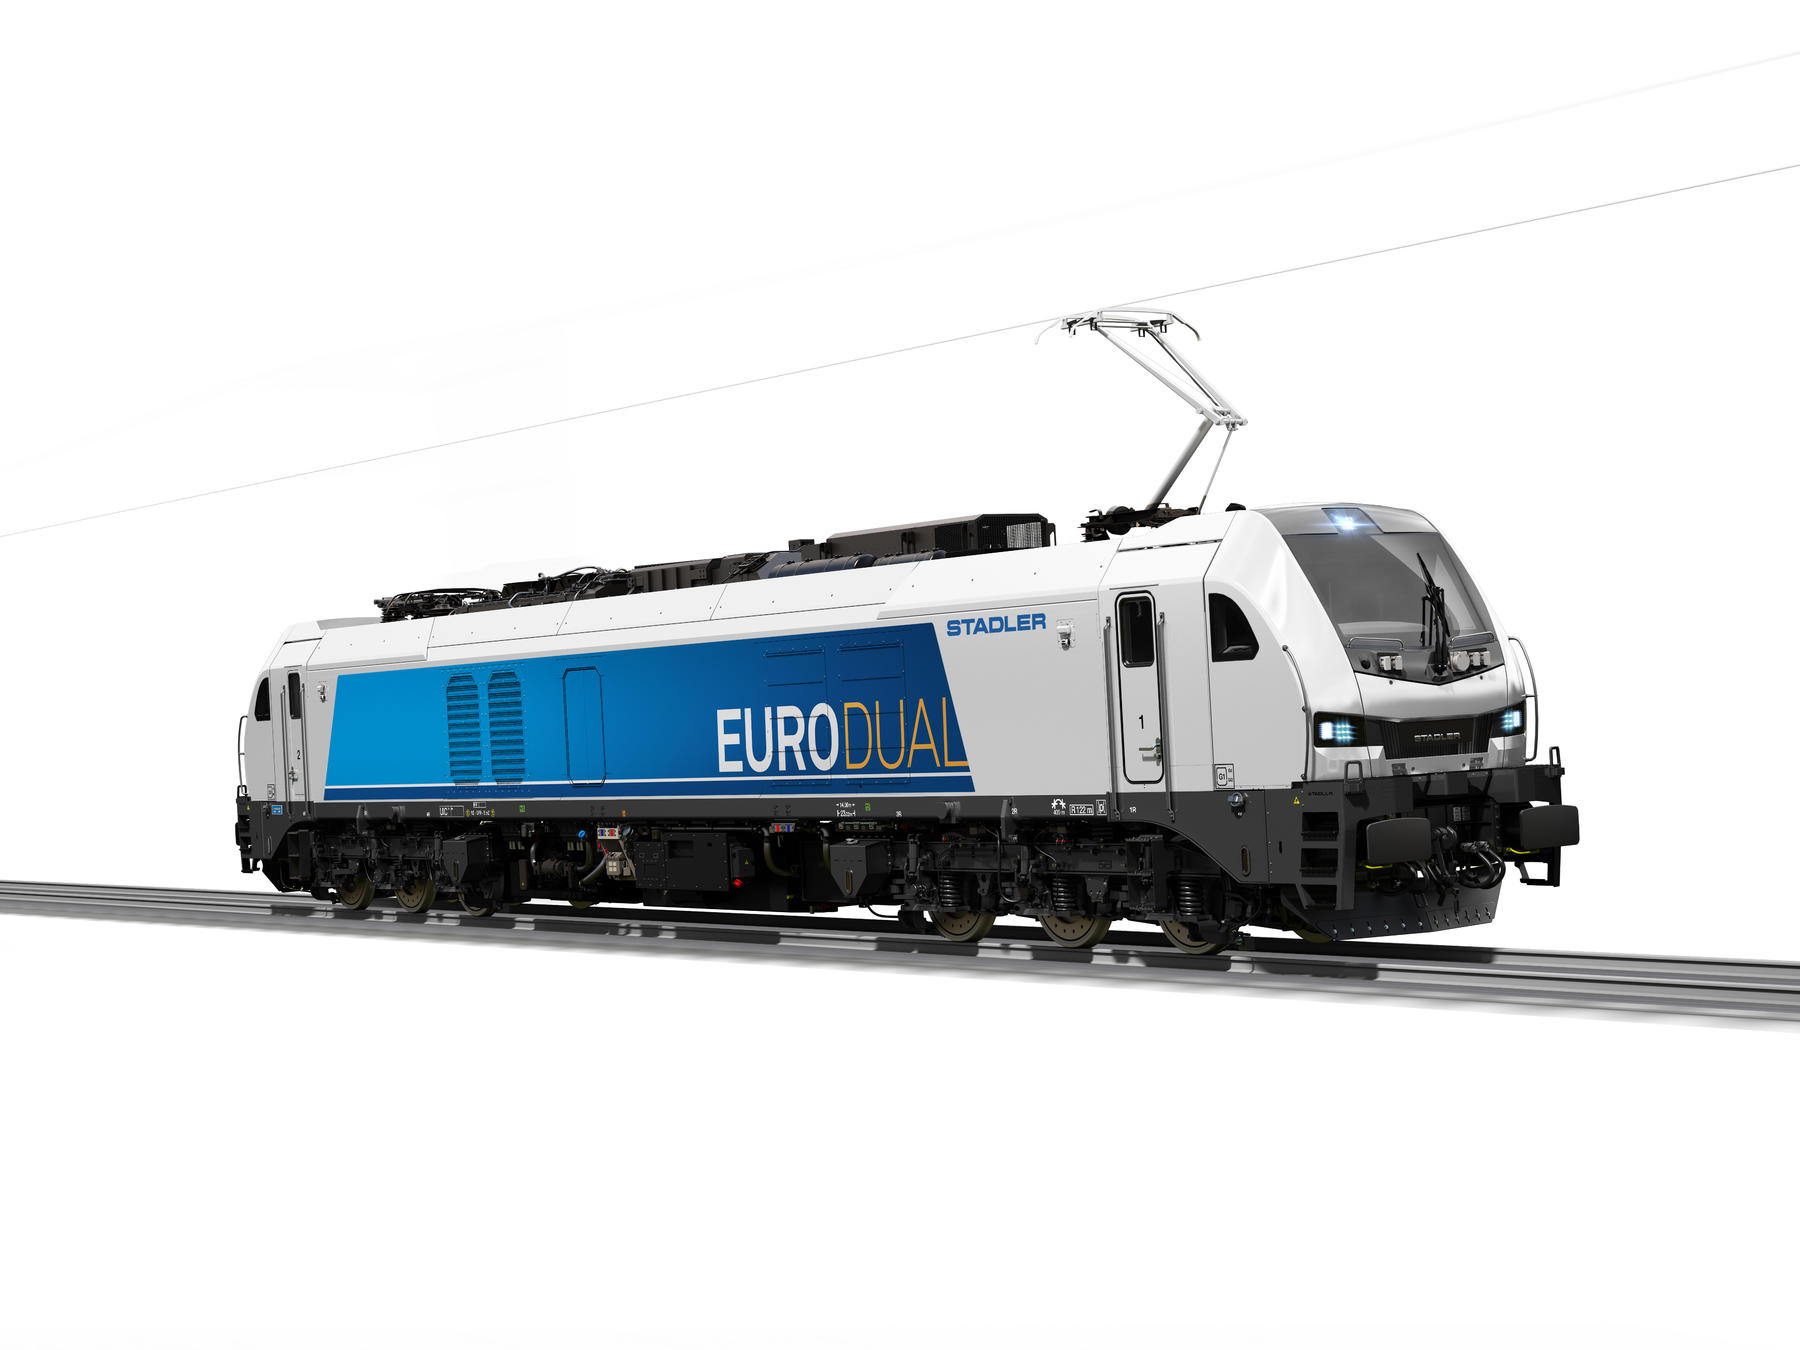 Rendering of Eurodual locomotive for Turkey